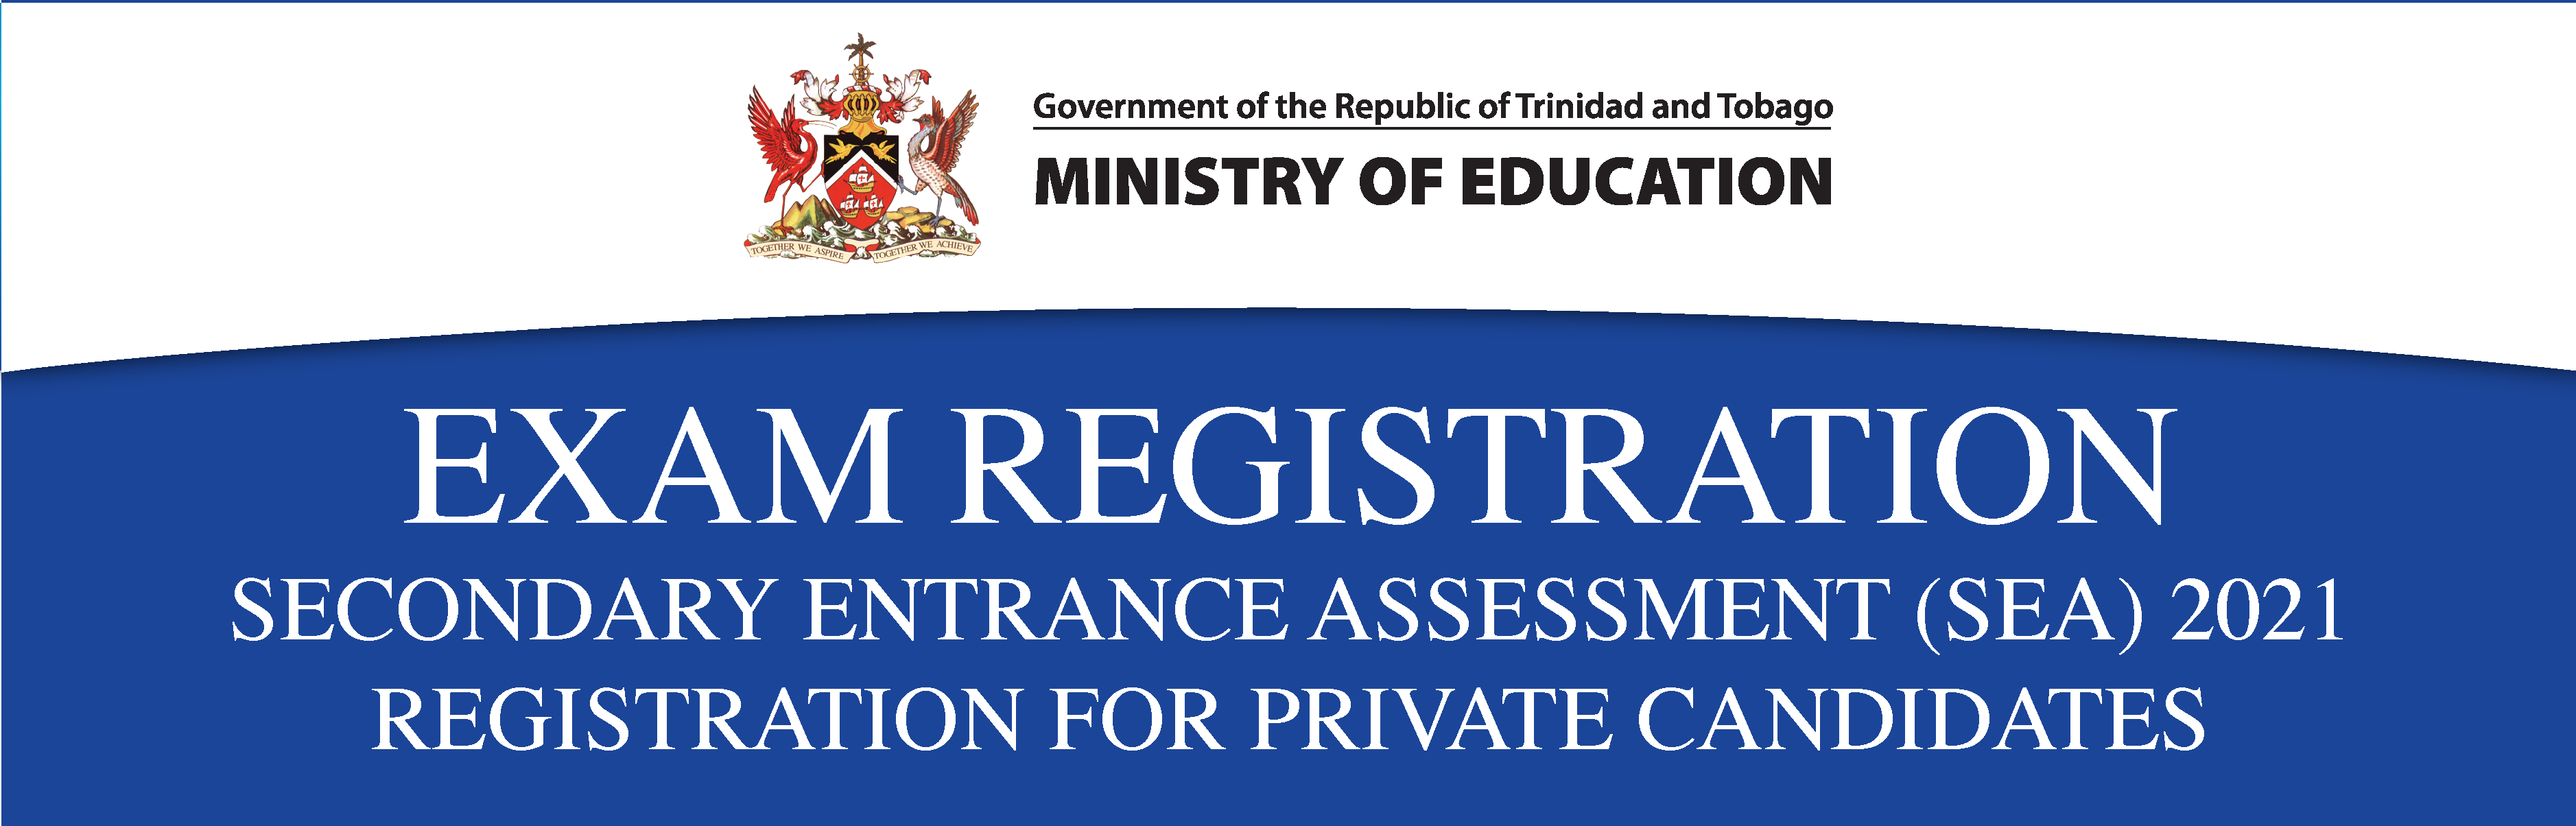 EXAM REGISTRATION: SECONDARY ENTRANCE ASSESSMENT (SEA) 2021 REGISTRATION FOR PRIVATE CANDIDATES